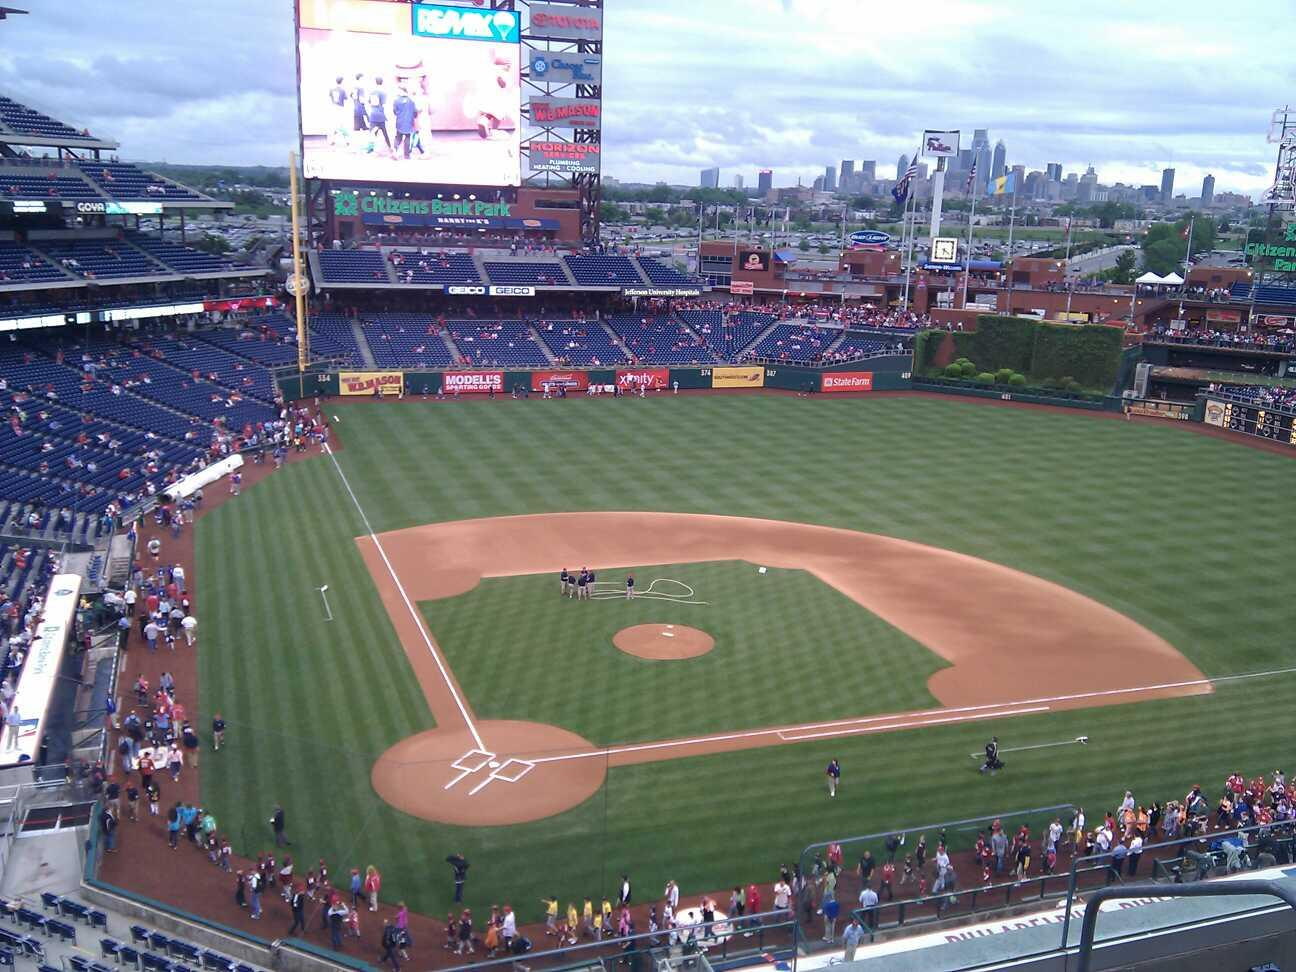 Citizens Bank Park Section 318 Row 5 Seat 4